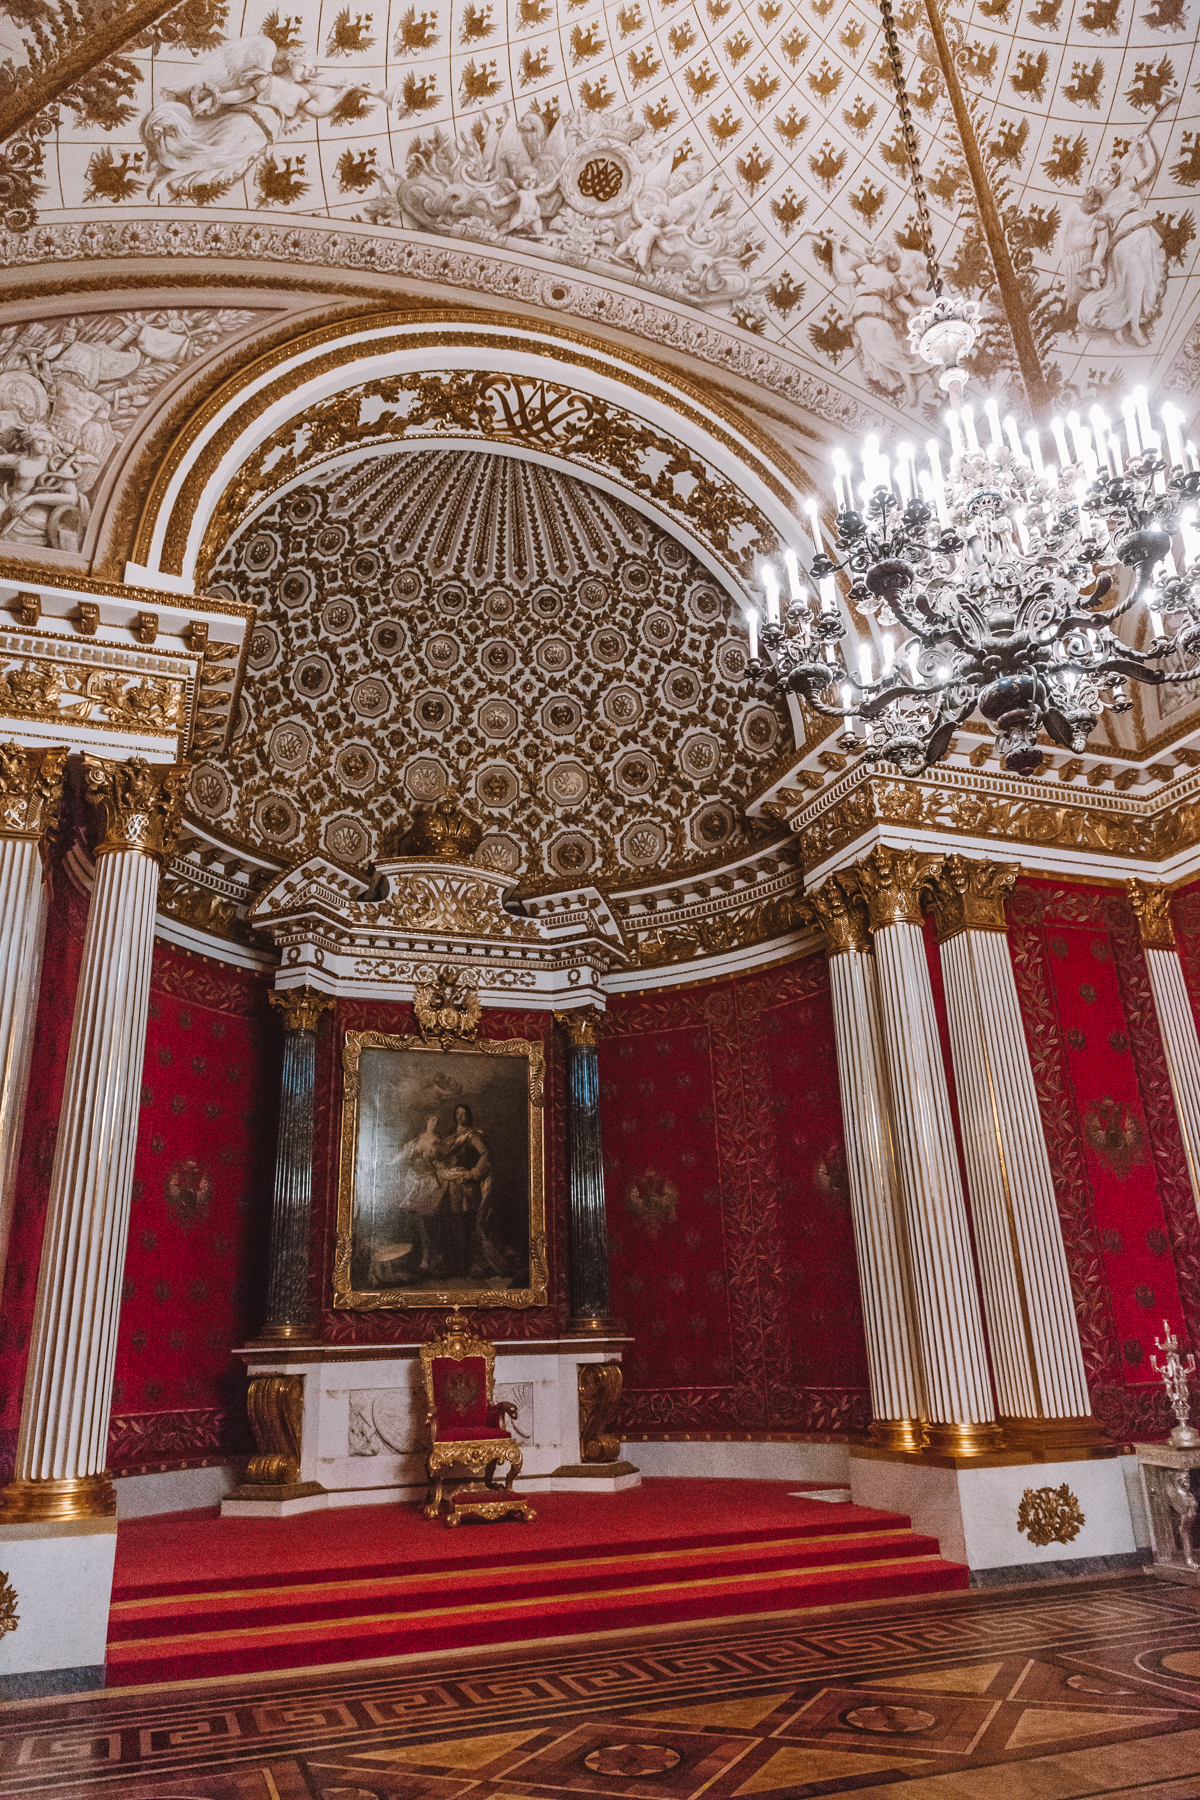 thestylejungle-Russia-Saint-Petersburg-Winter-palace-interior-travel-blogger